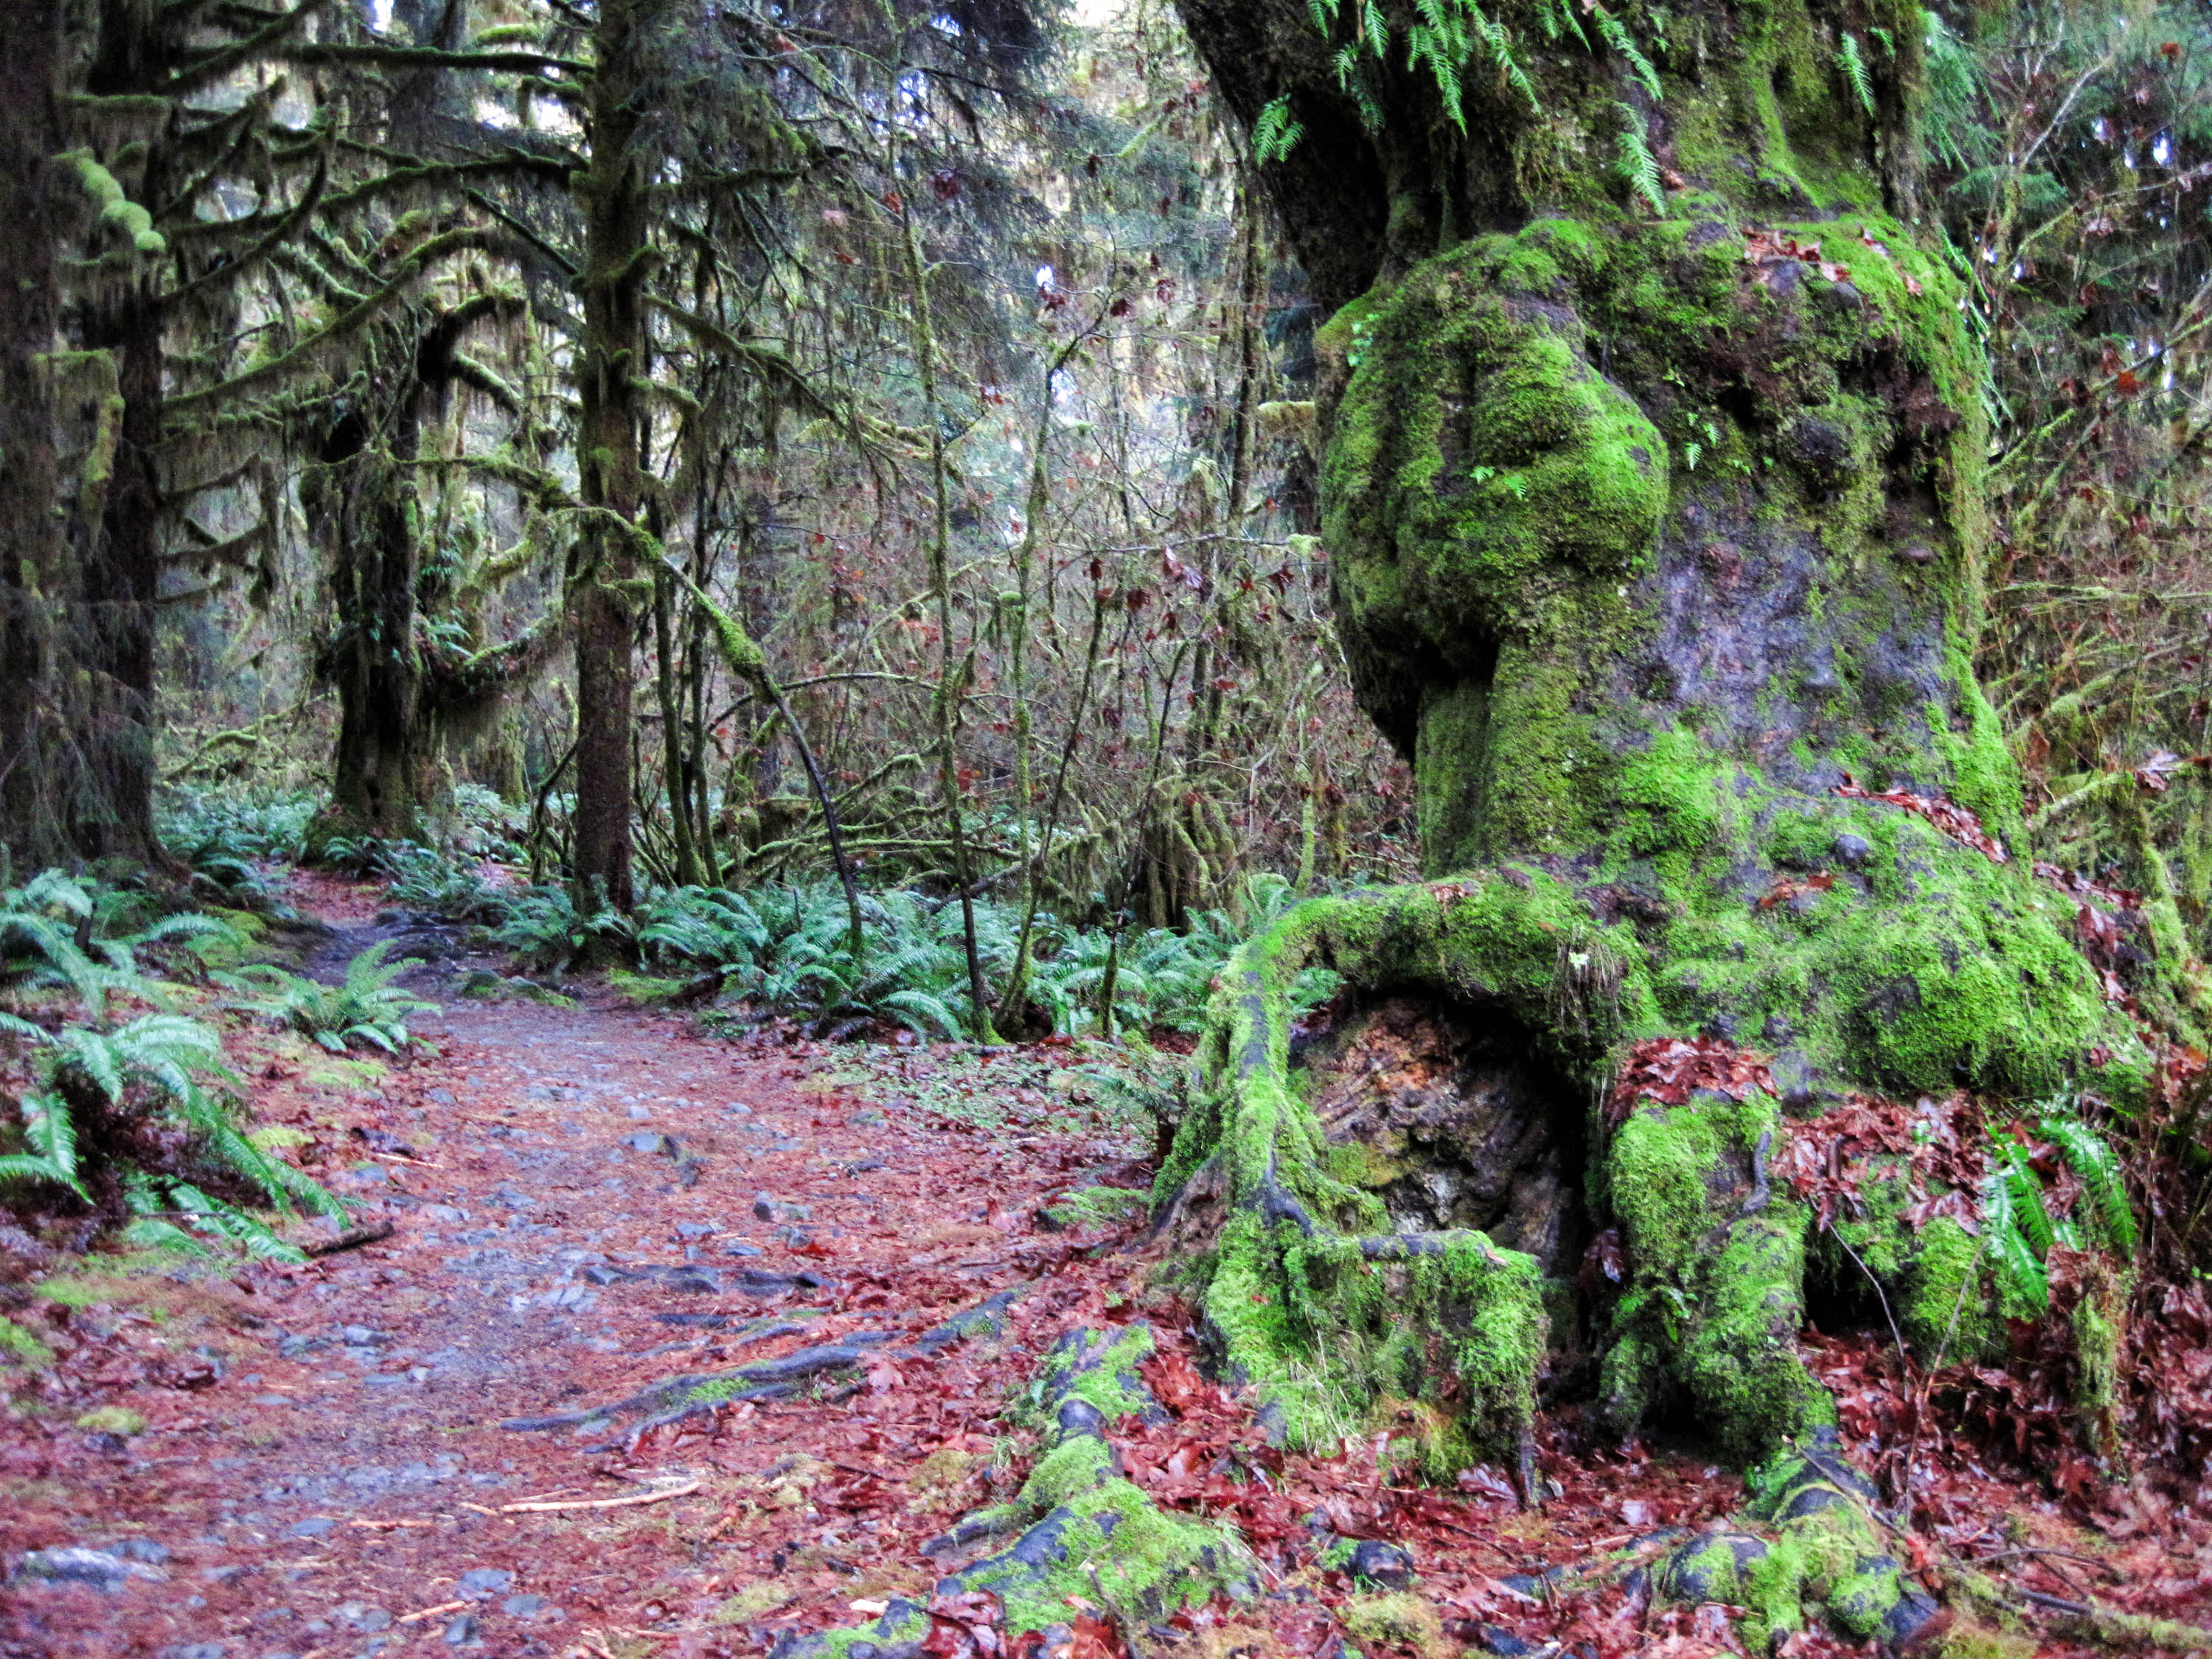 The temperate rainforest invites winter hikers to the Hoh River Trail in the Olympic National Park, Washington, USA. <em>Amanda Castleman©</em>